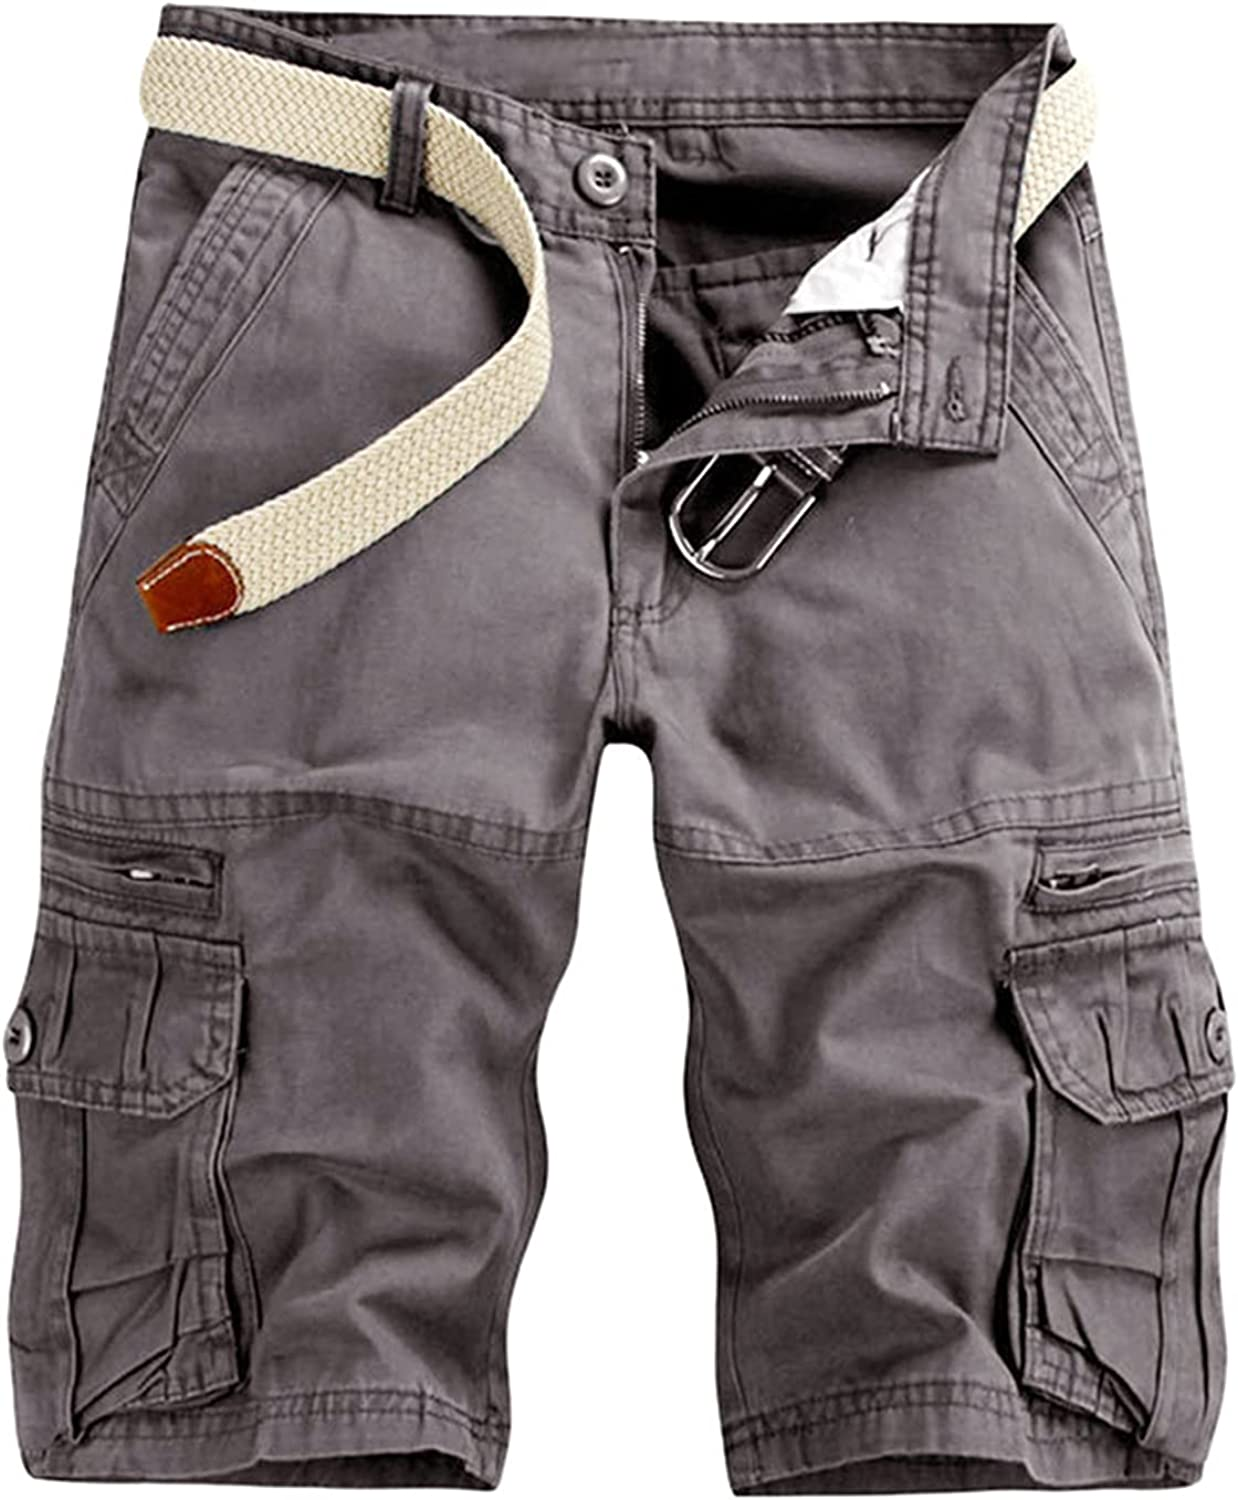 LEIYAN Mens Retro Work Cargo Shorts Casual Waist Relaxed Loose Fit Active Outdoor Traveling Hiking Joggers Shorts